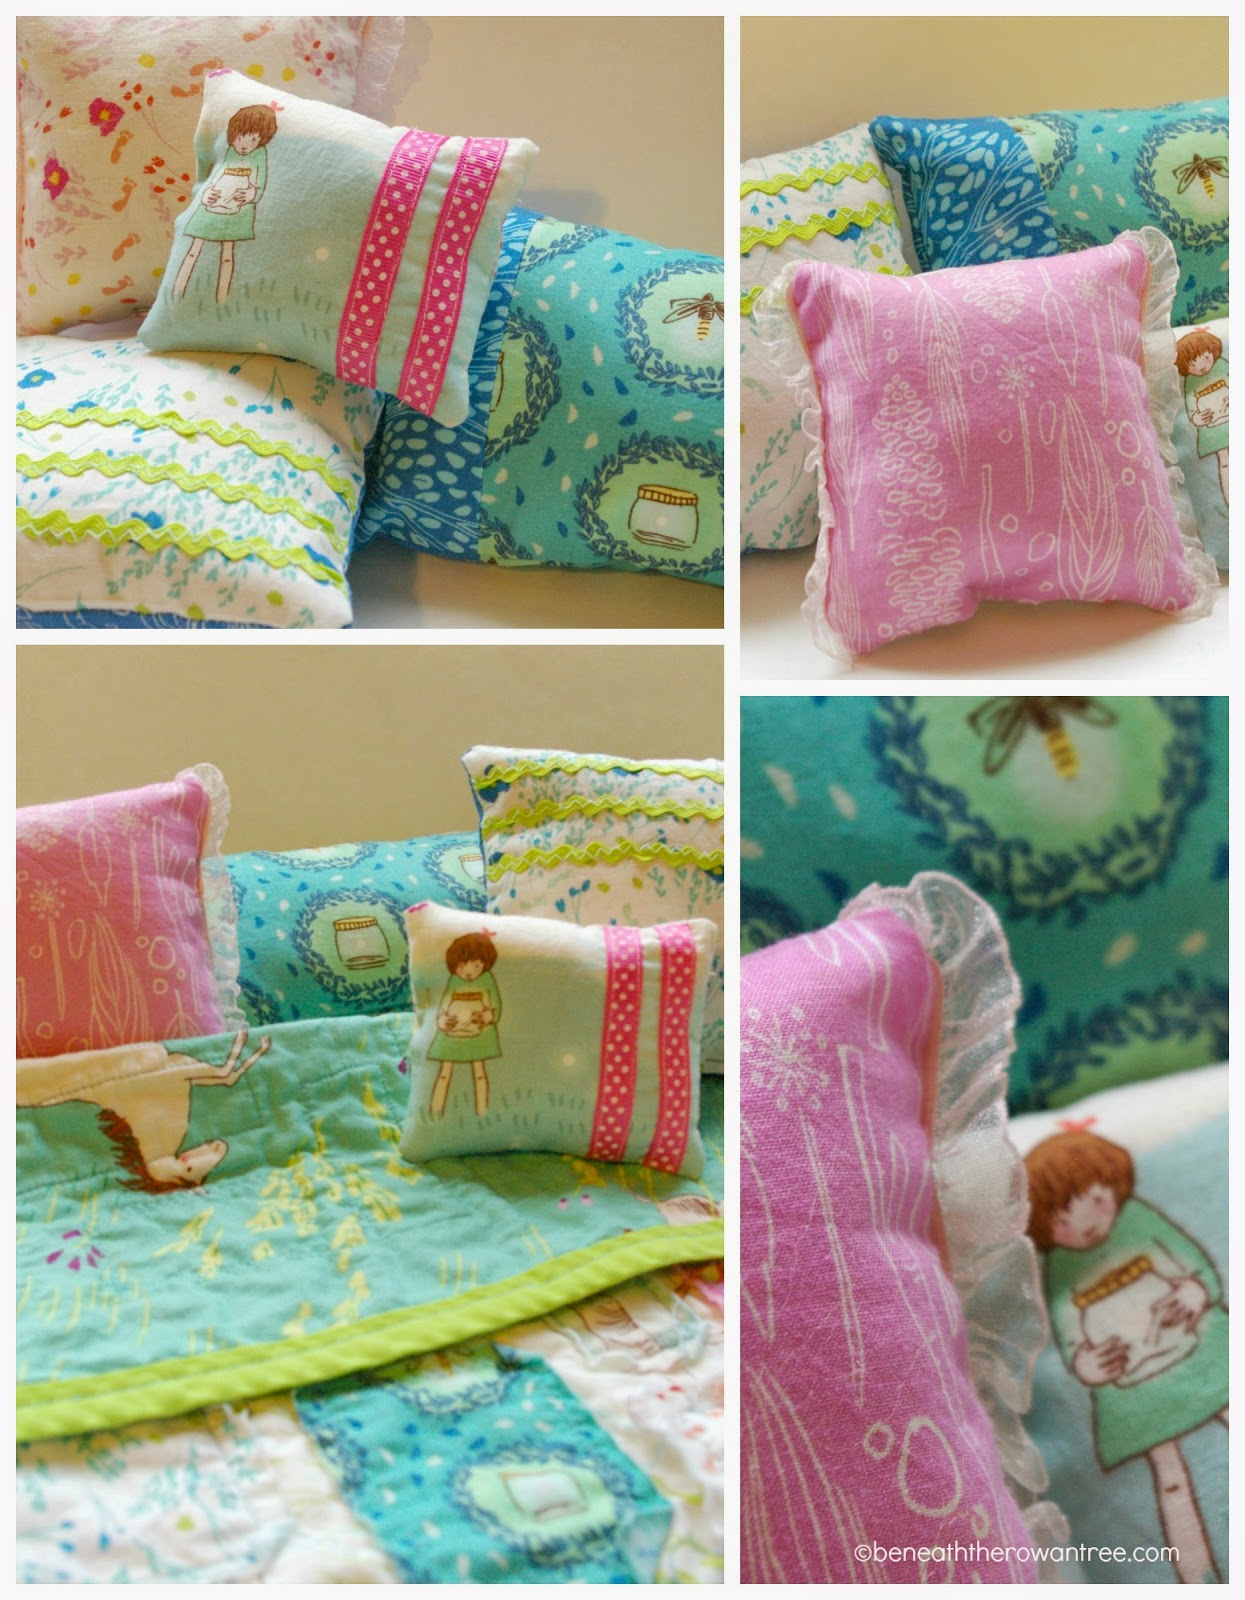 Trend Handmade Christmas DIY American Girl Doll Bed Bedding and Storage